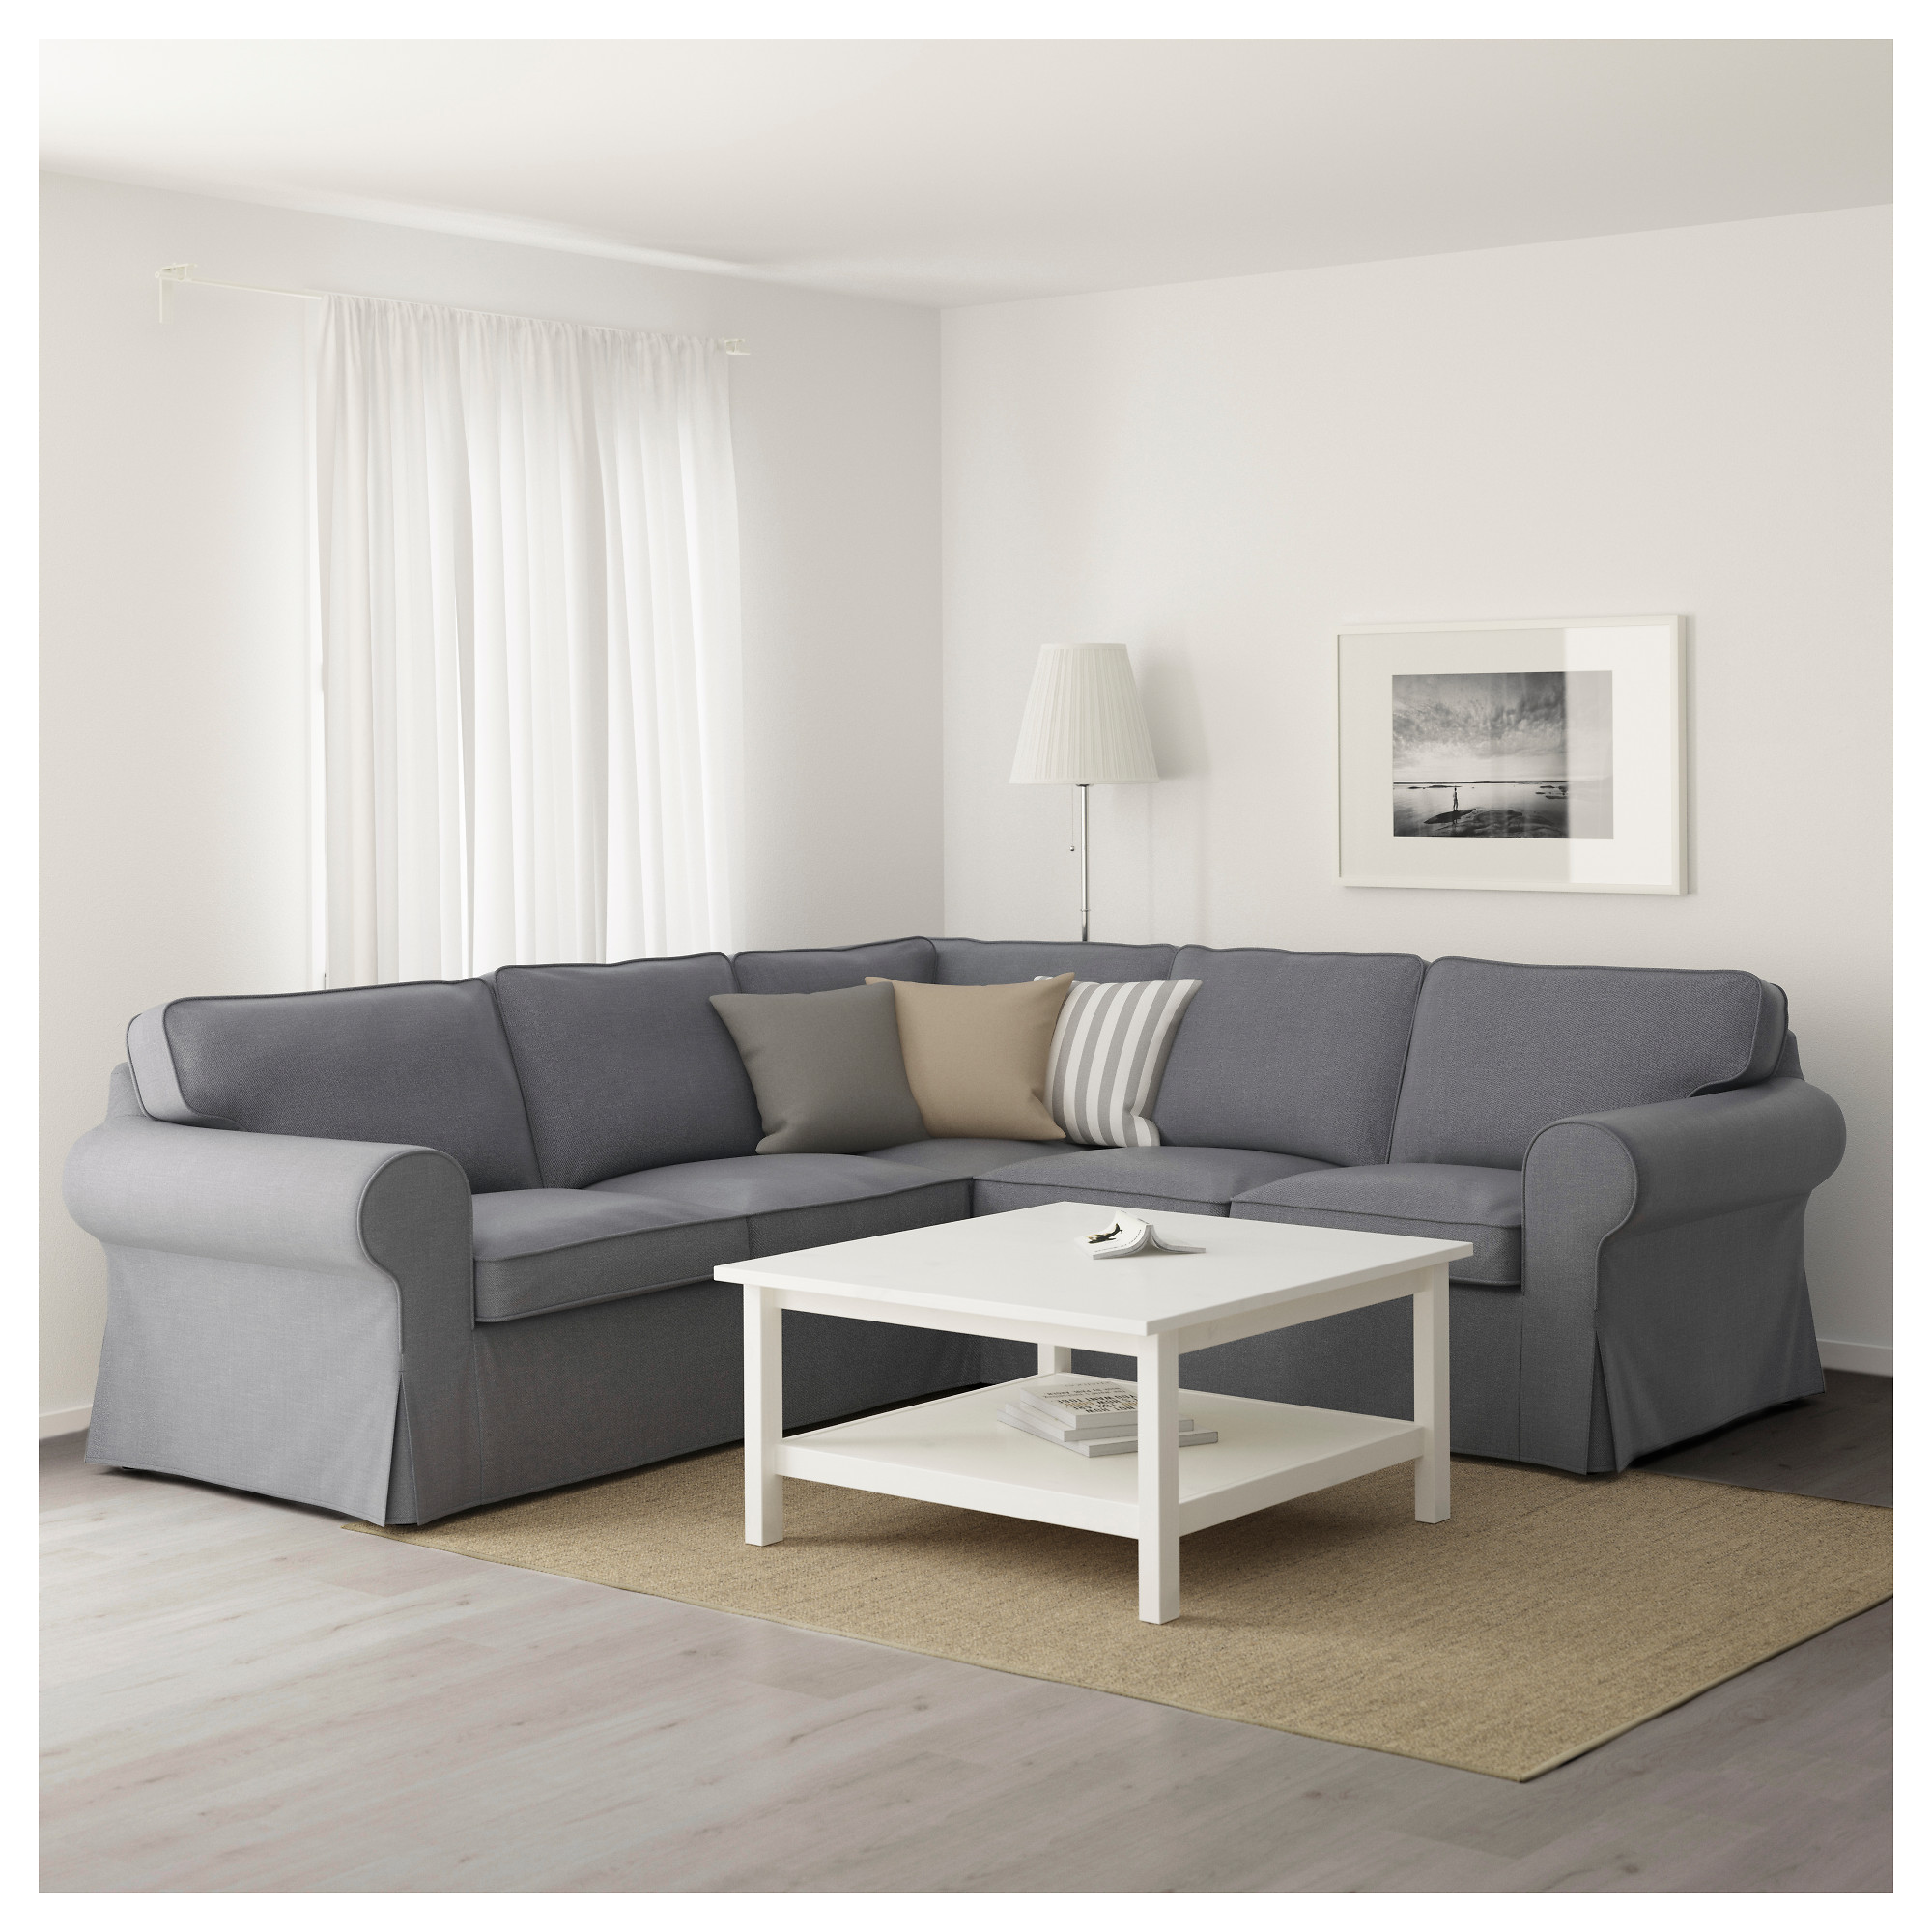 : gray sectional - Sectionals, Sofas & Couches